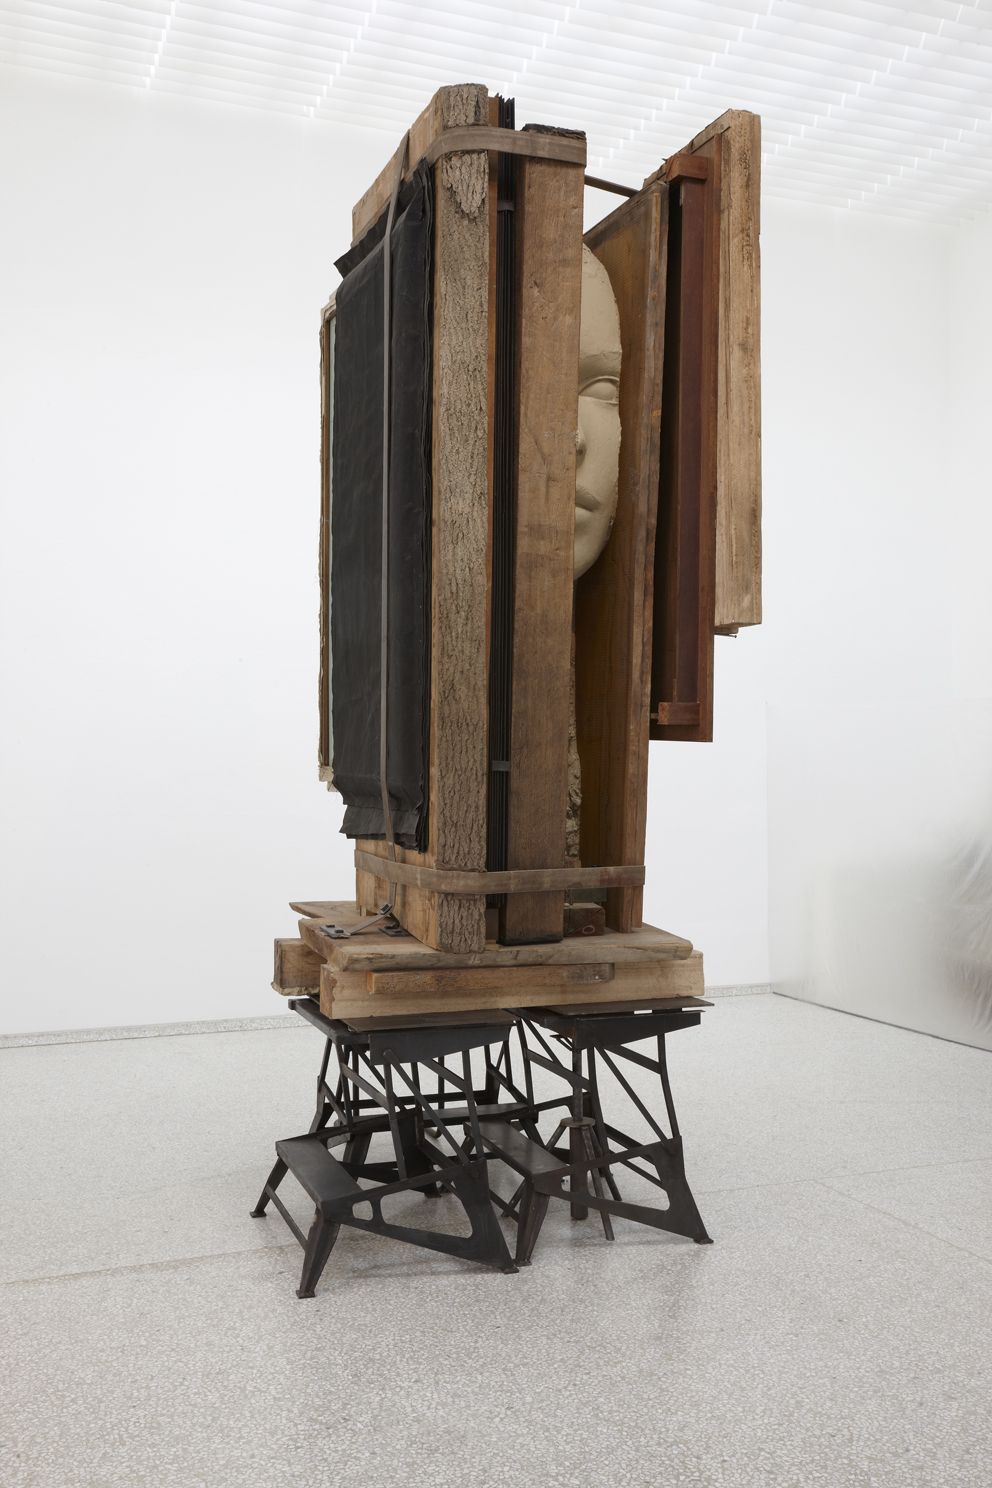 Mark Manders, Working Table, 2012-2013